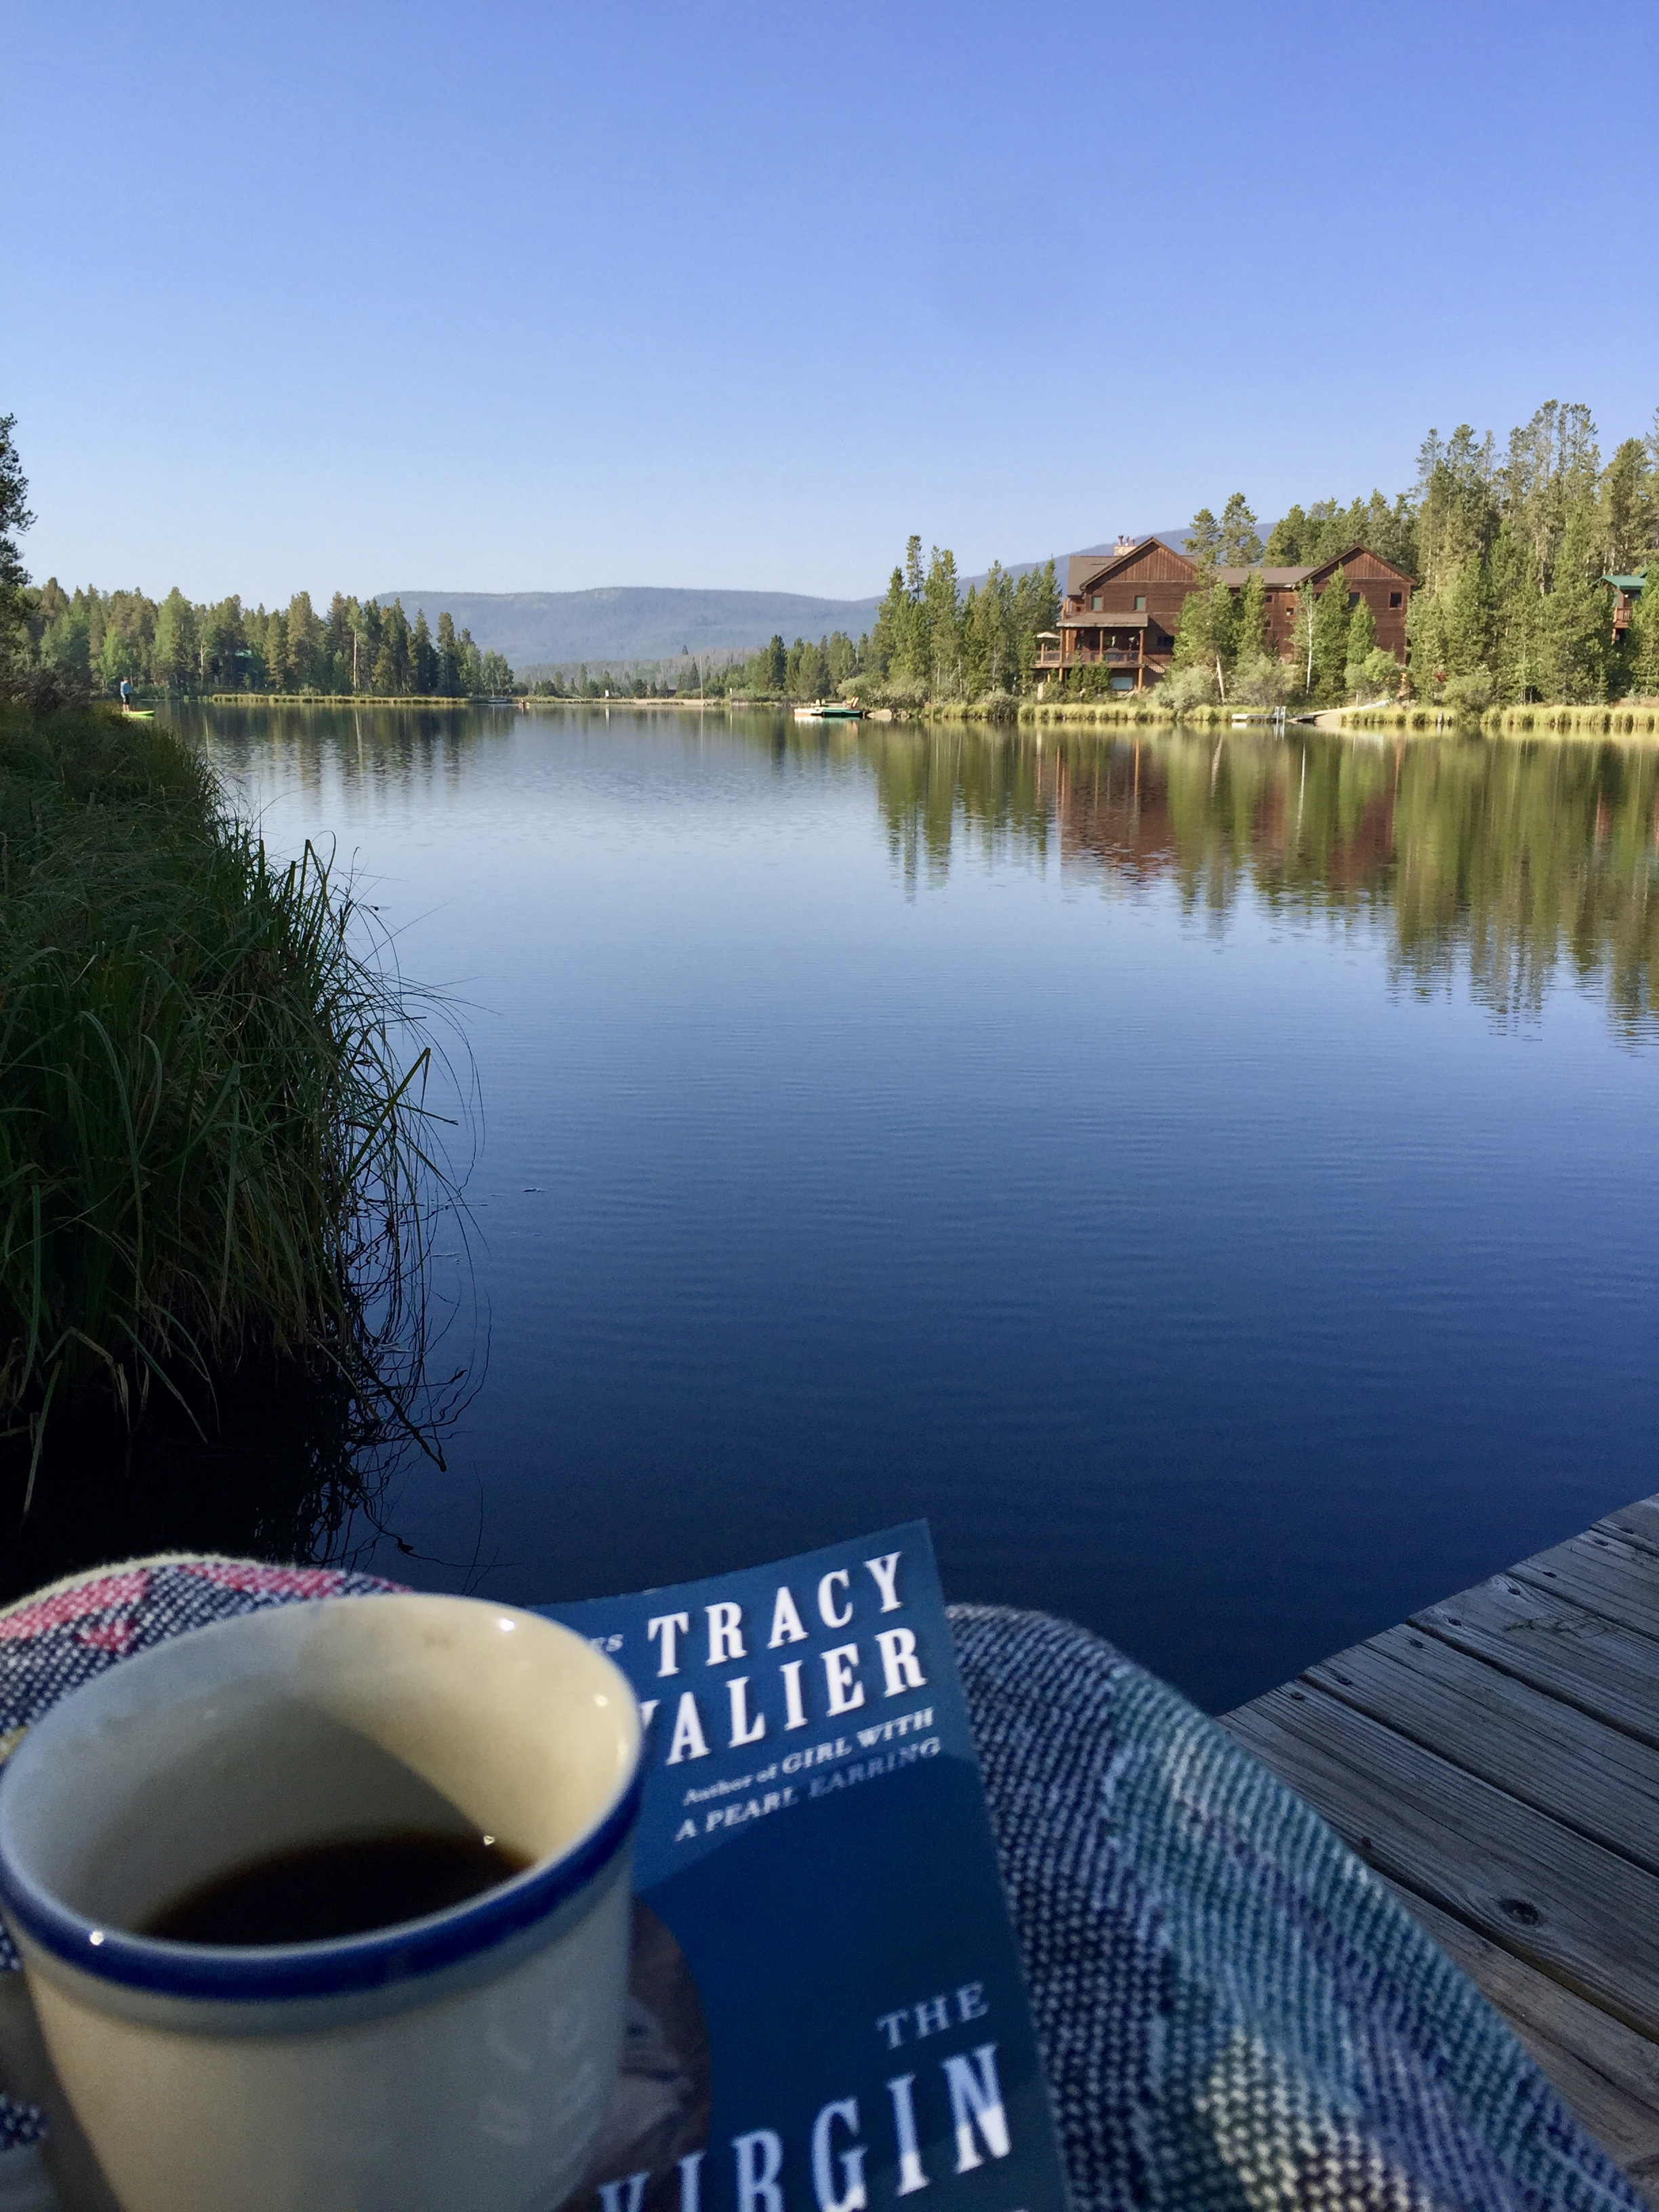 Morning coffee and a great book on our private dock. Basically how I wish every day of my life could begin.